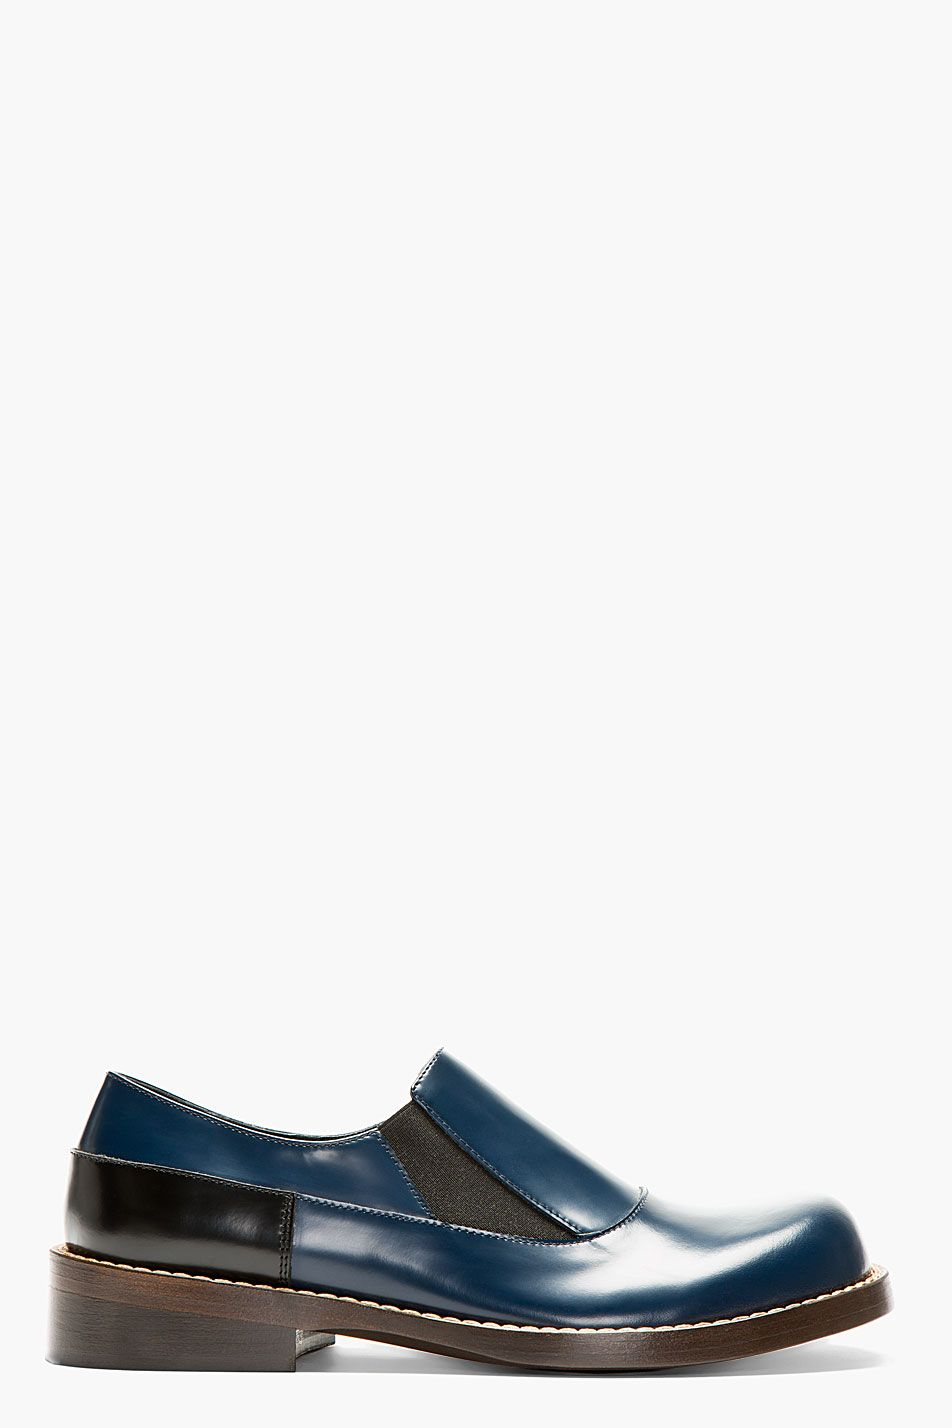 MARNI Blue Leather Loafers